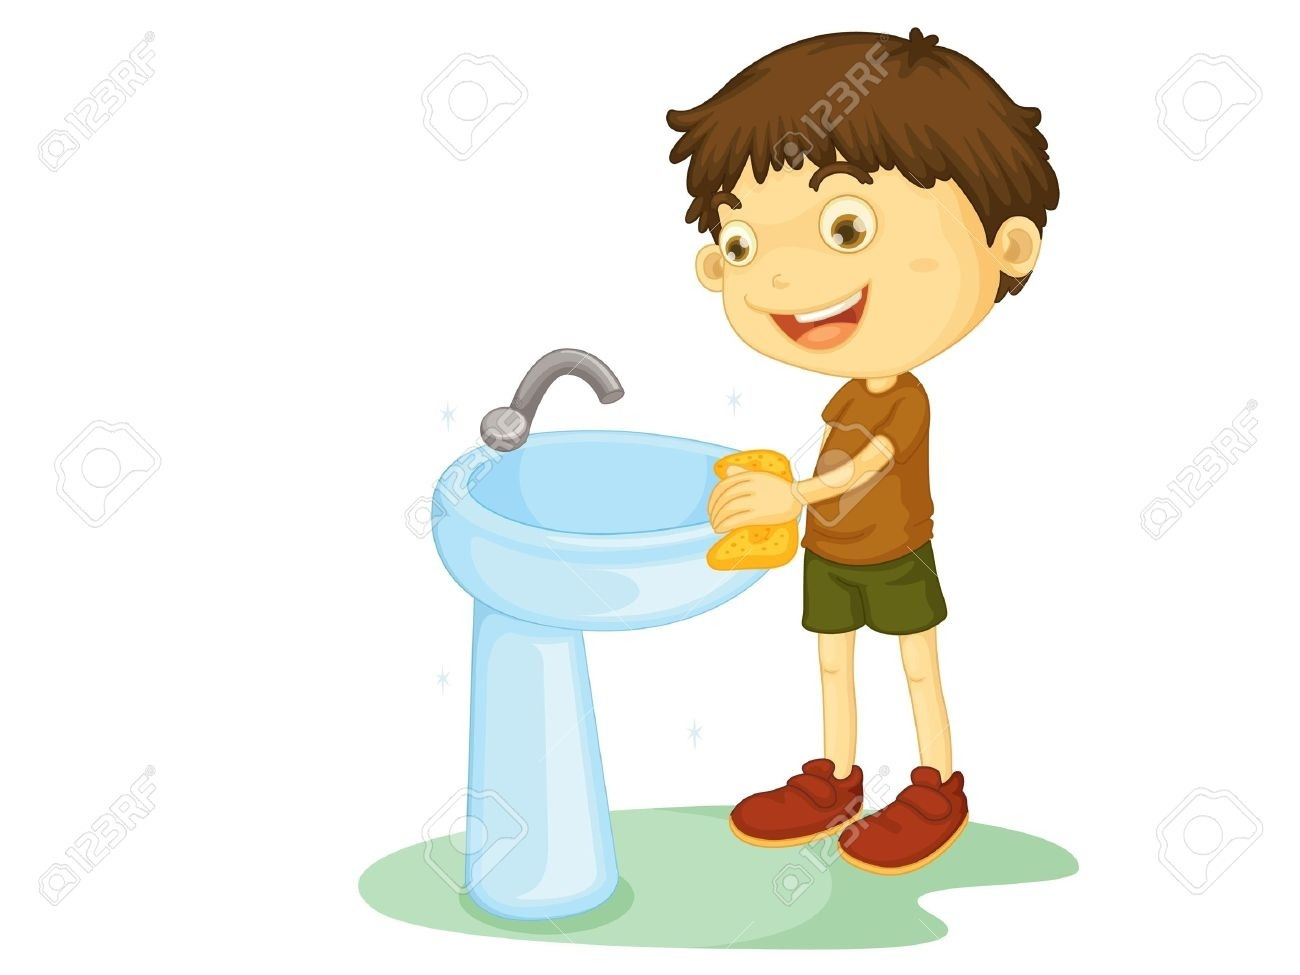 Clean clipart clean bathroom. Kids cleaning letters avaz